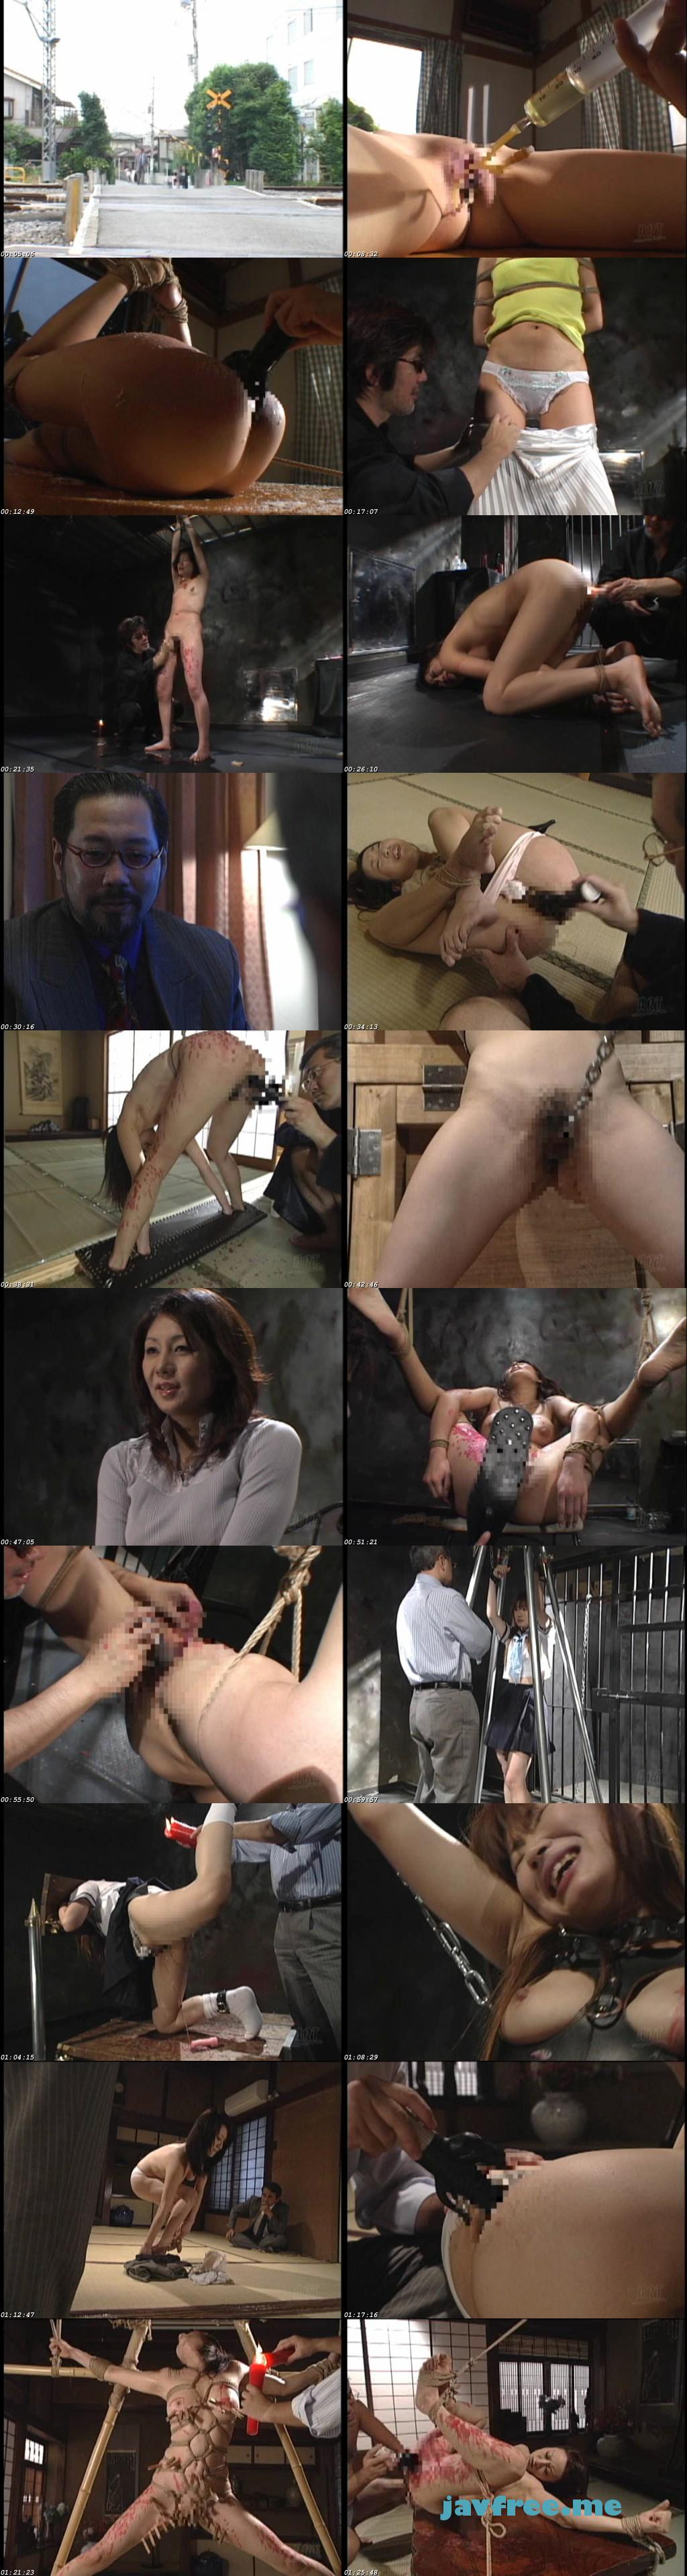 [ADV-SR0055] 性獣図鑑オムニバス 3 - image ADV-SR0055 on https://javfree.me